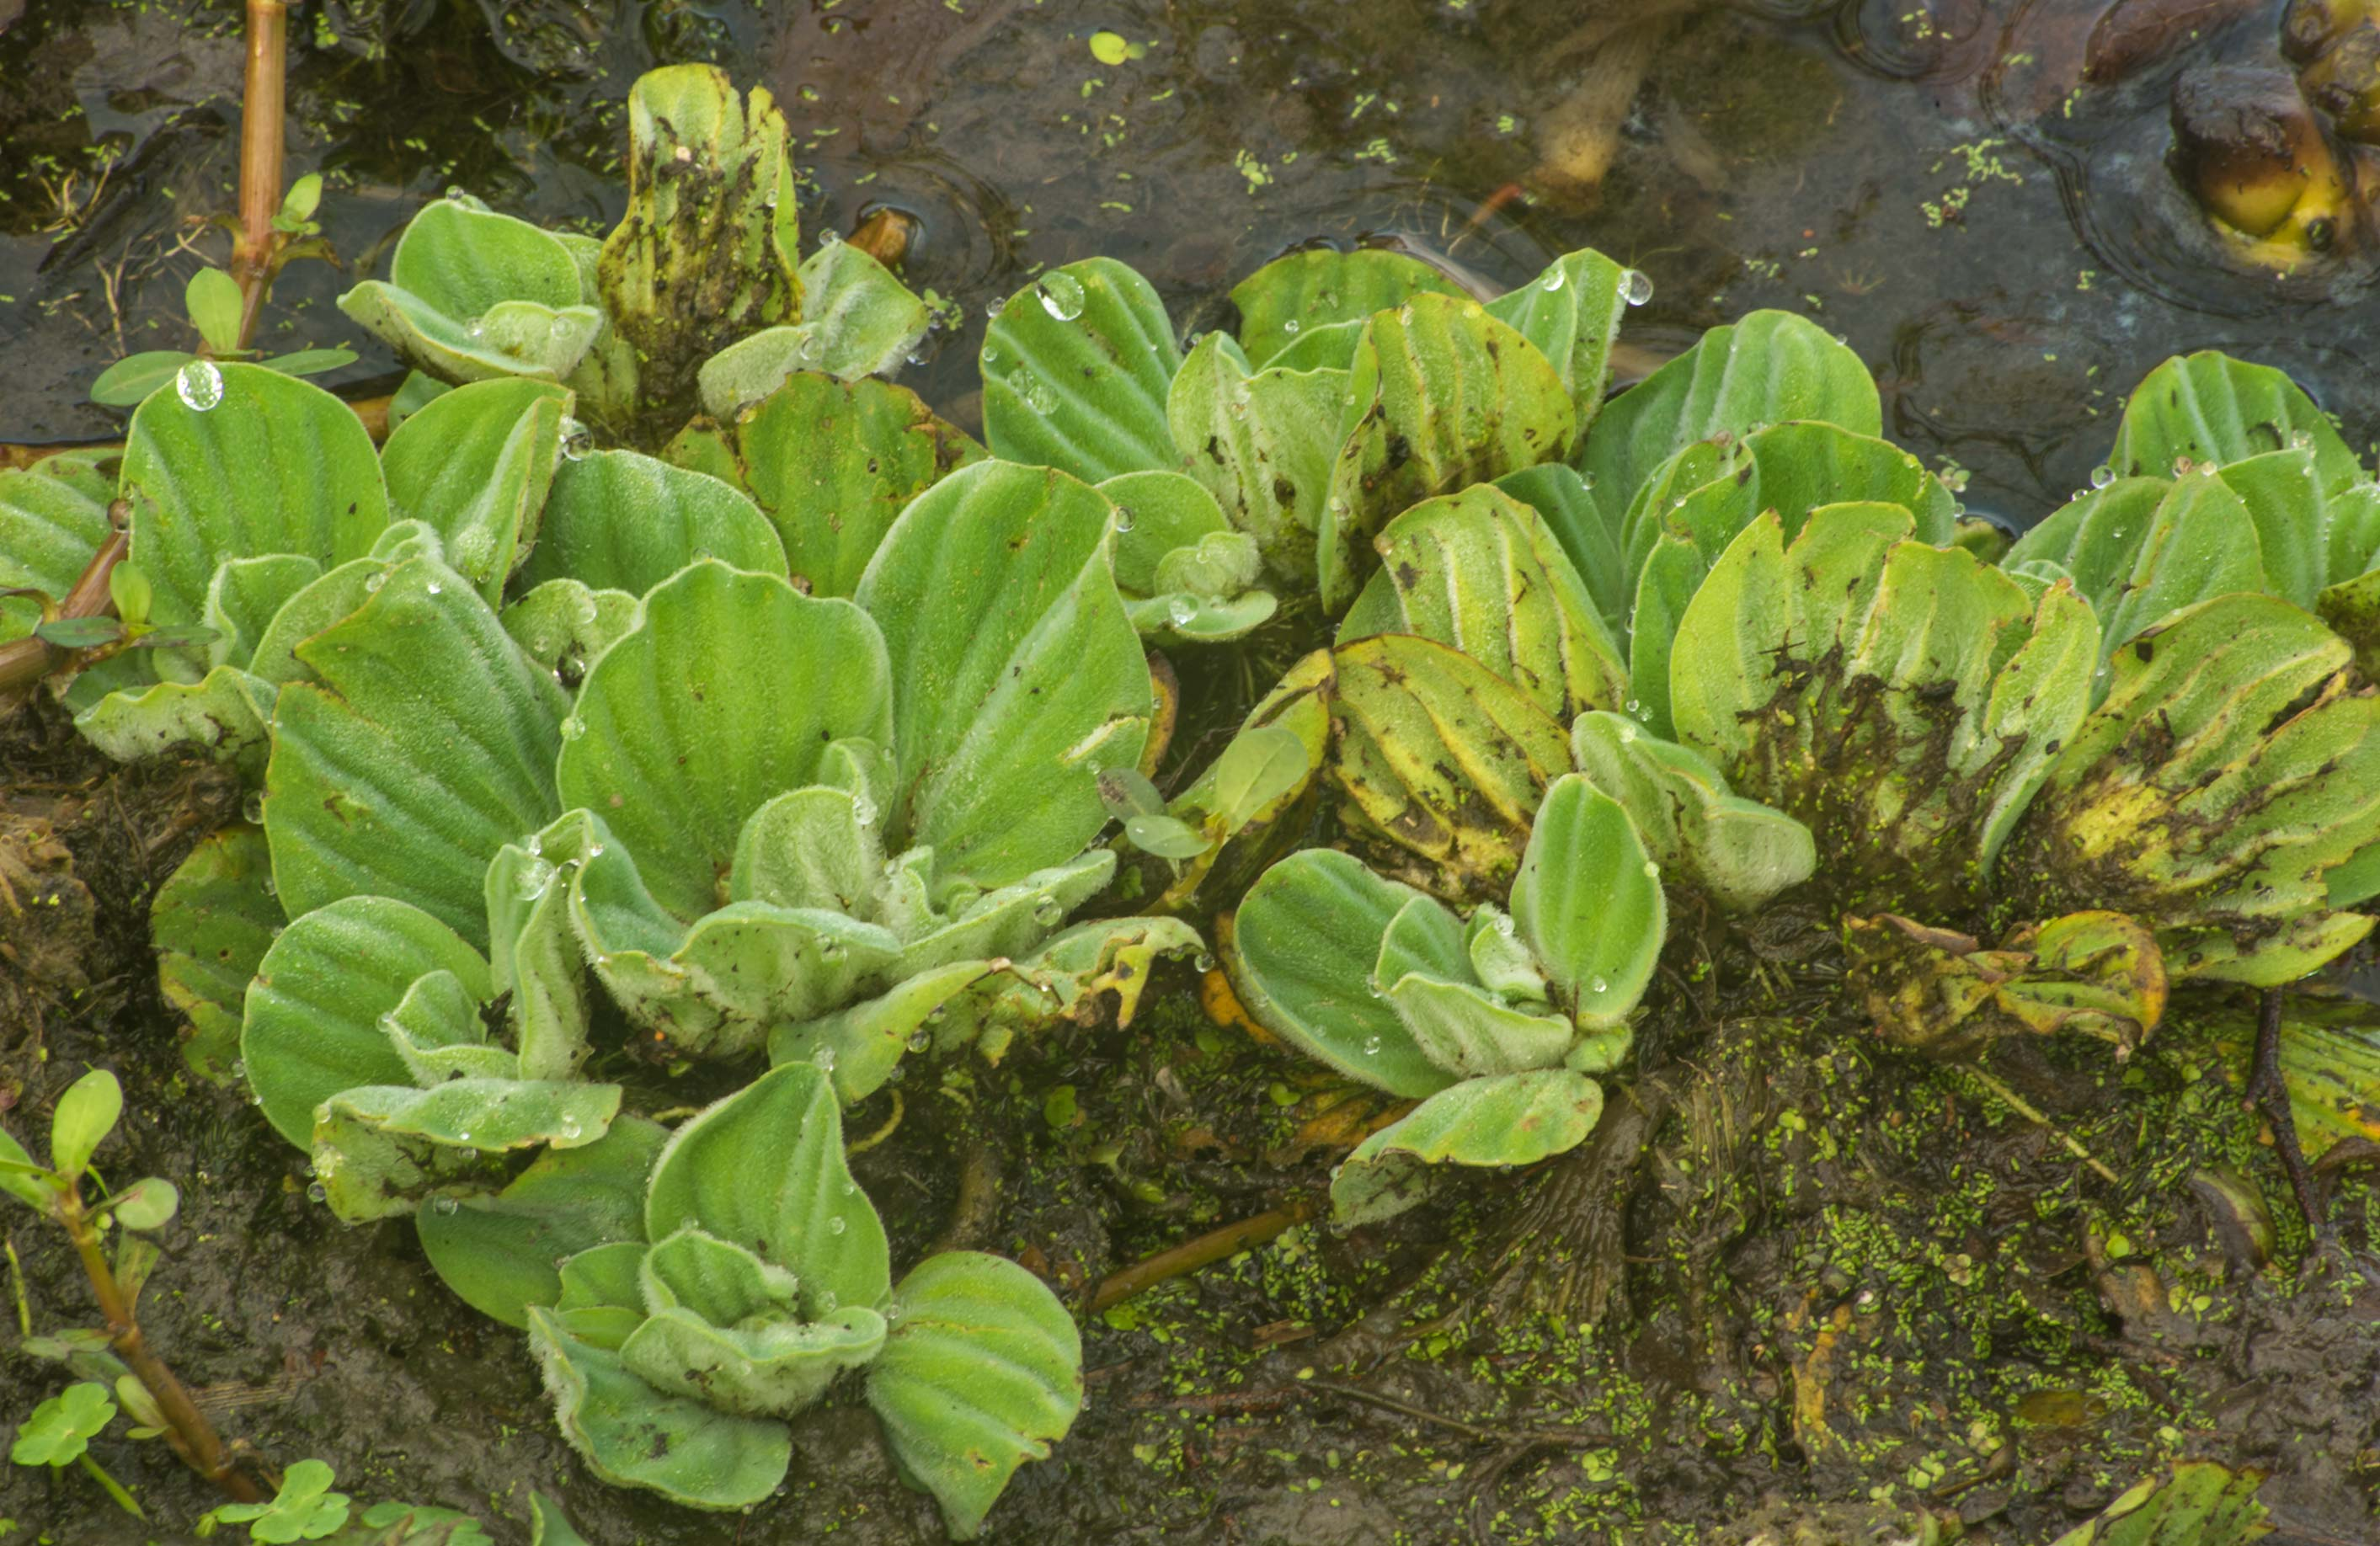 Water lettuce (Pistia stratiotes) on 40-Acre Lake...Bend State Park. Needville, Texas